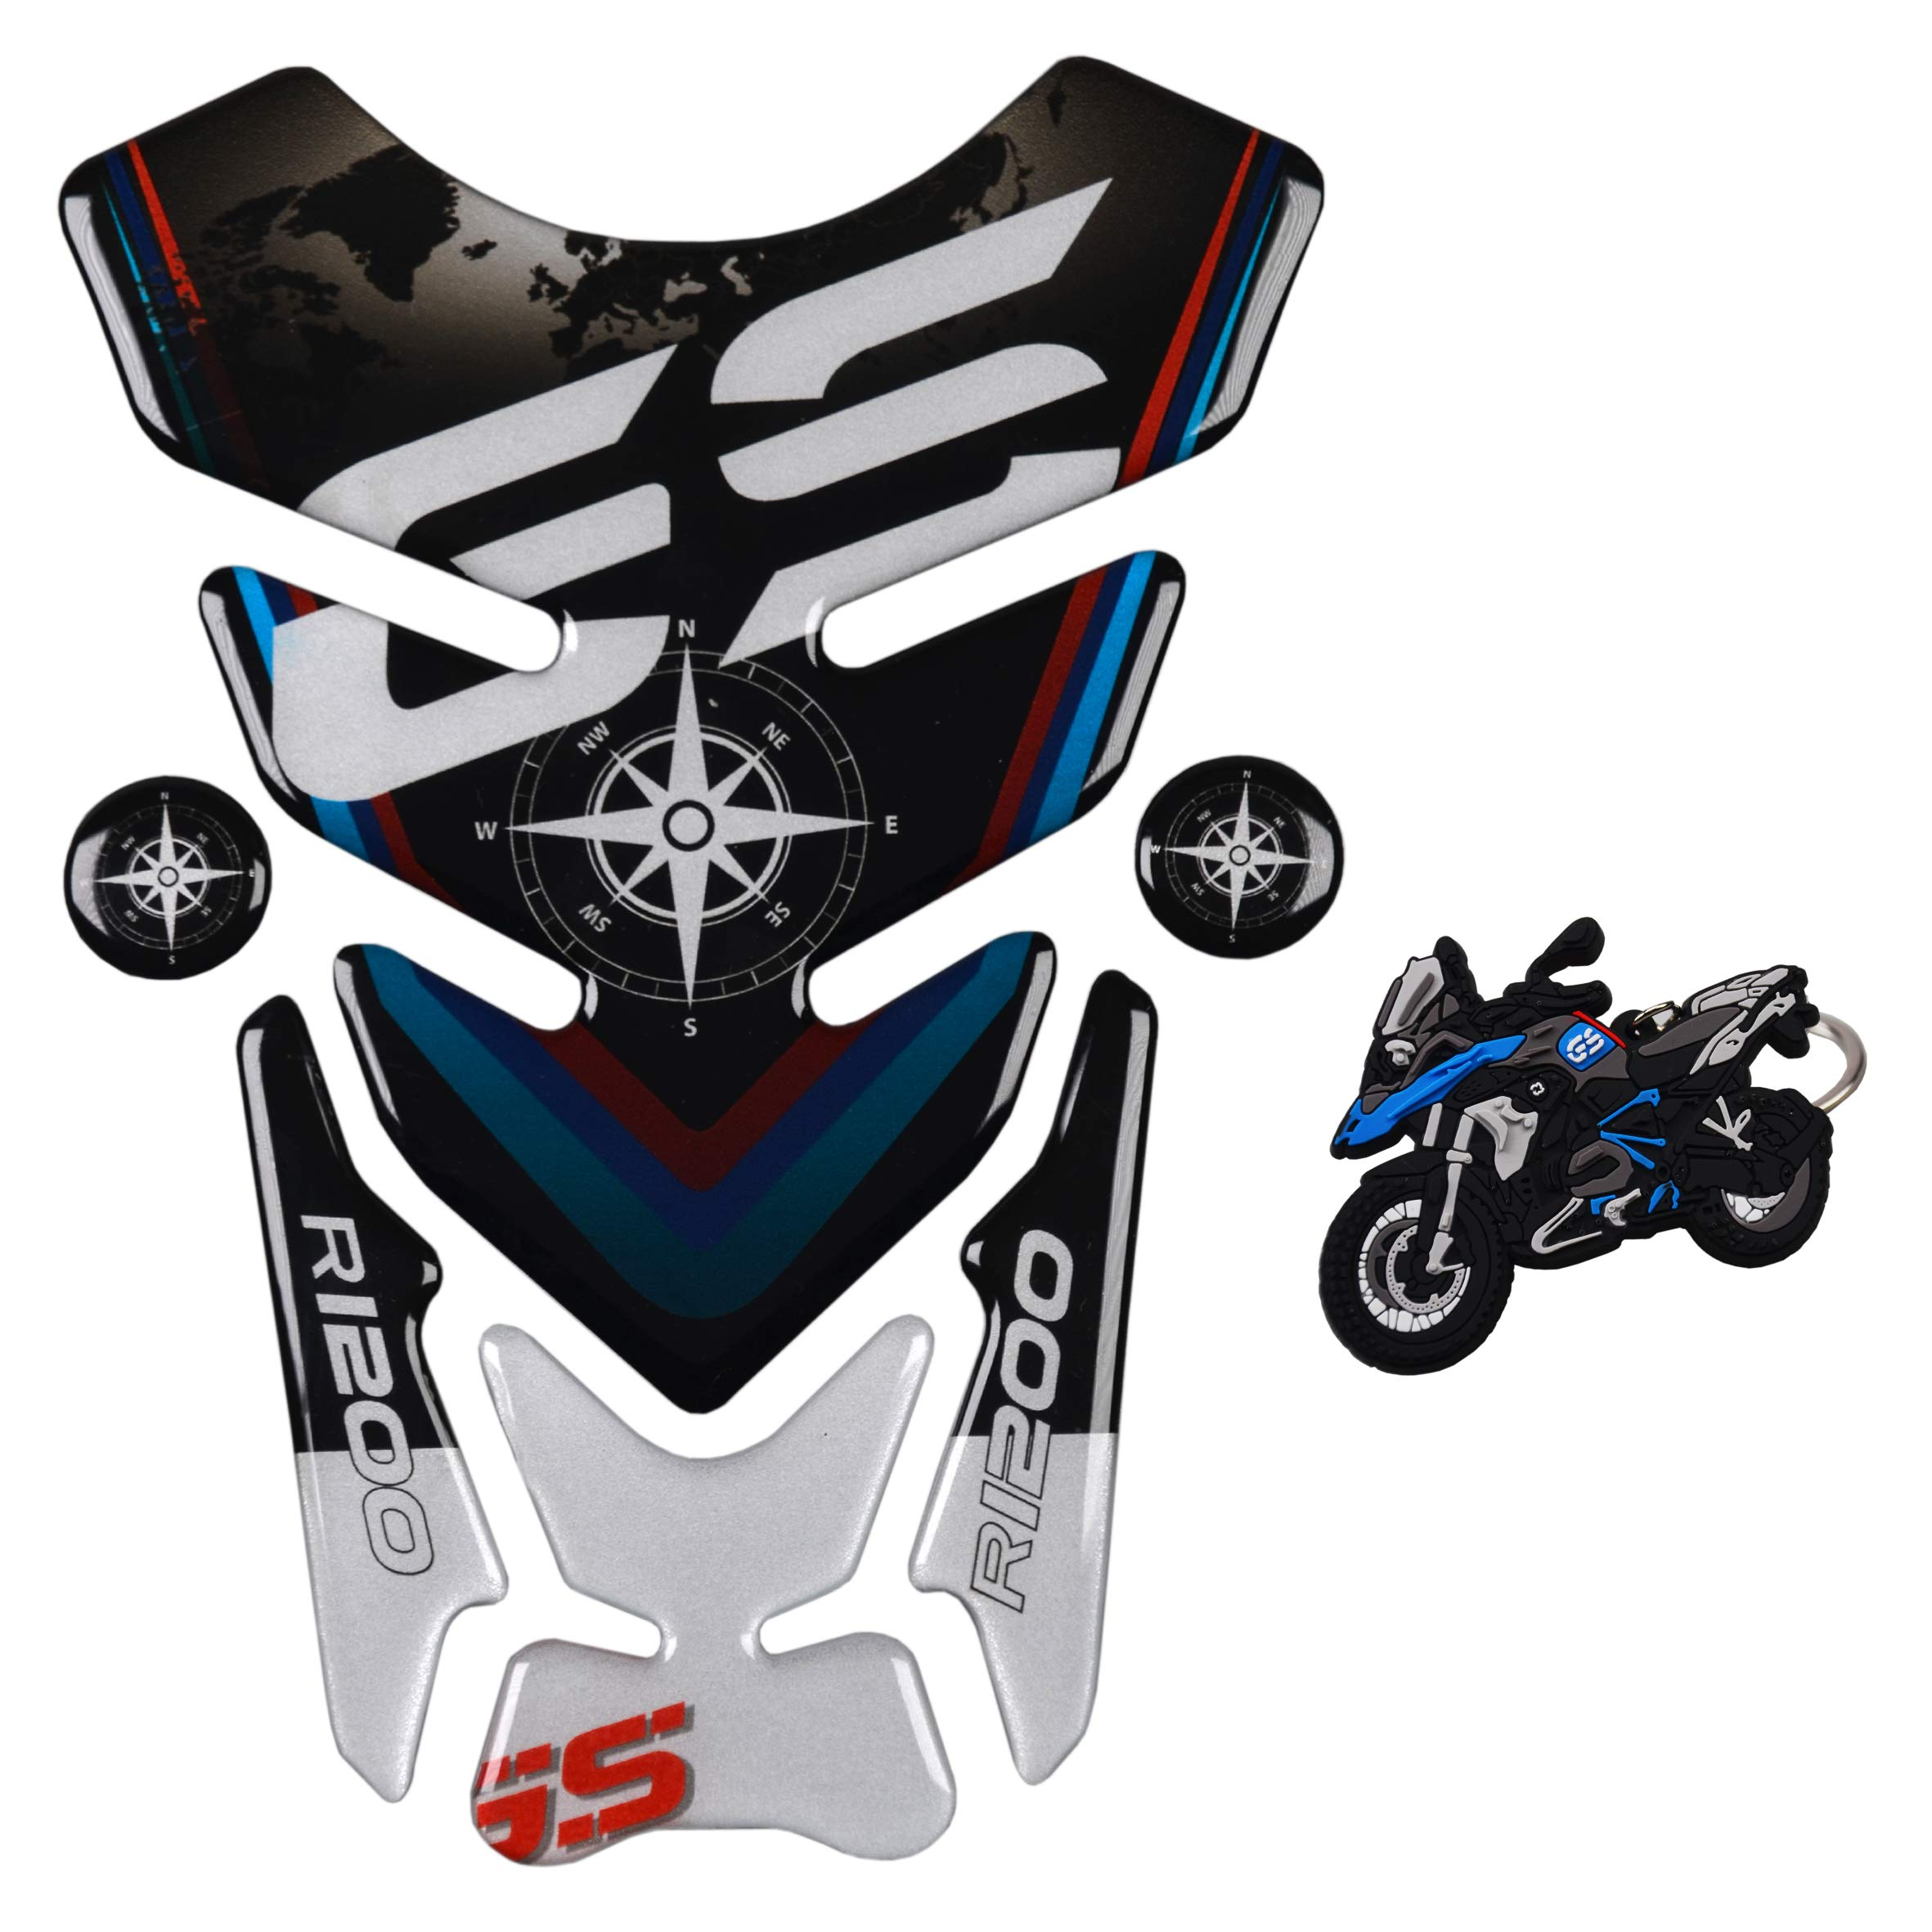 REVSOSTAR Motorcycle Reflective Sticker Tank Pad for R1200GS r1200gs GS Adventure ADV GS-Adv Tankpad with Keychain Gas Tank Protector